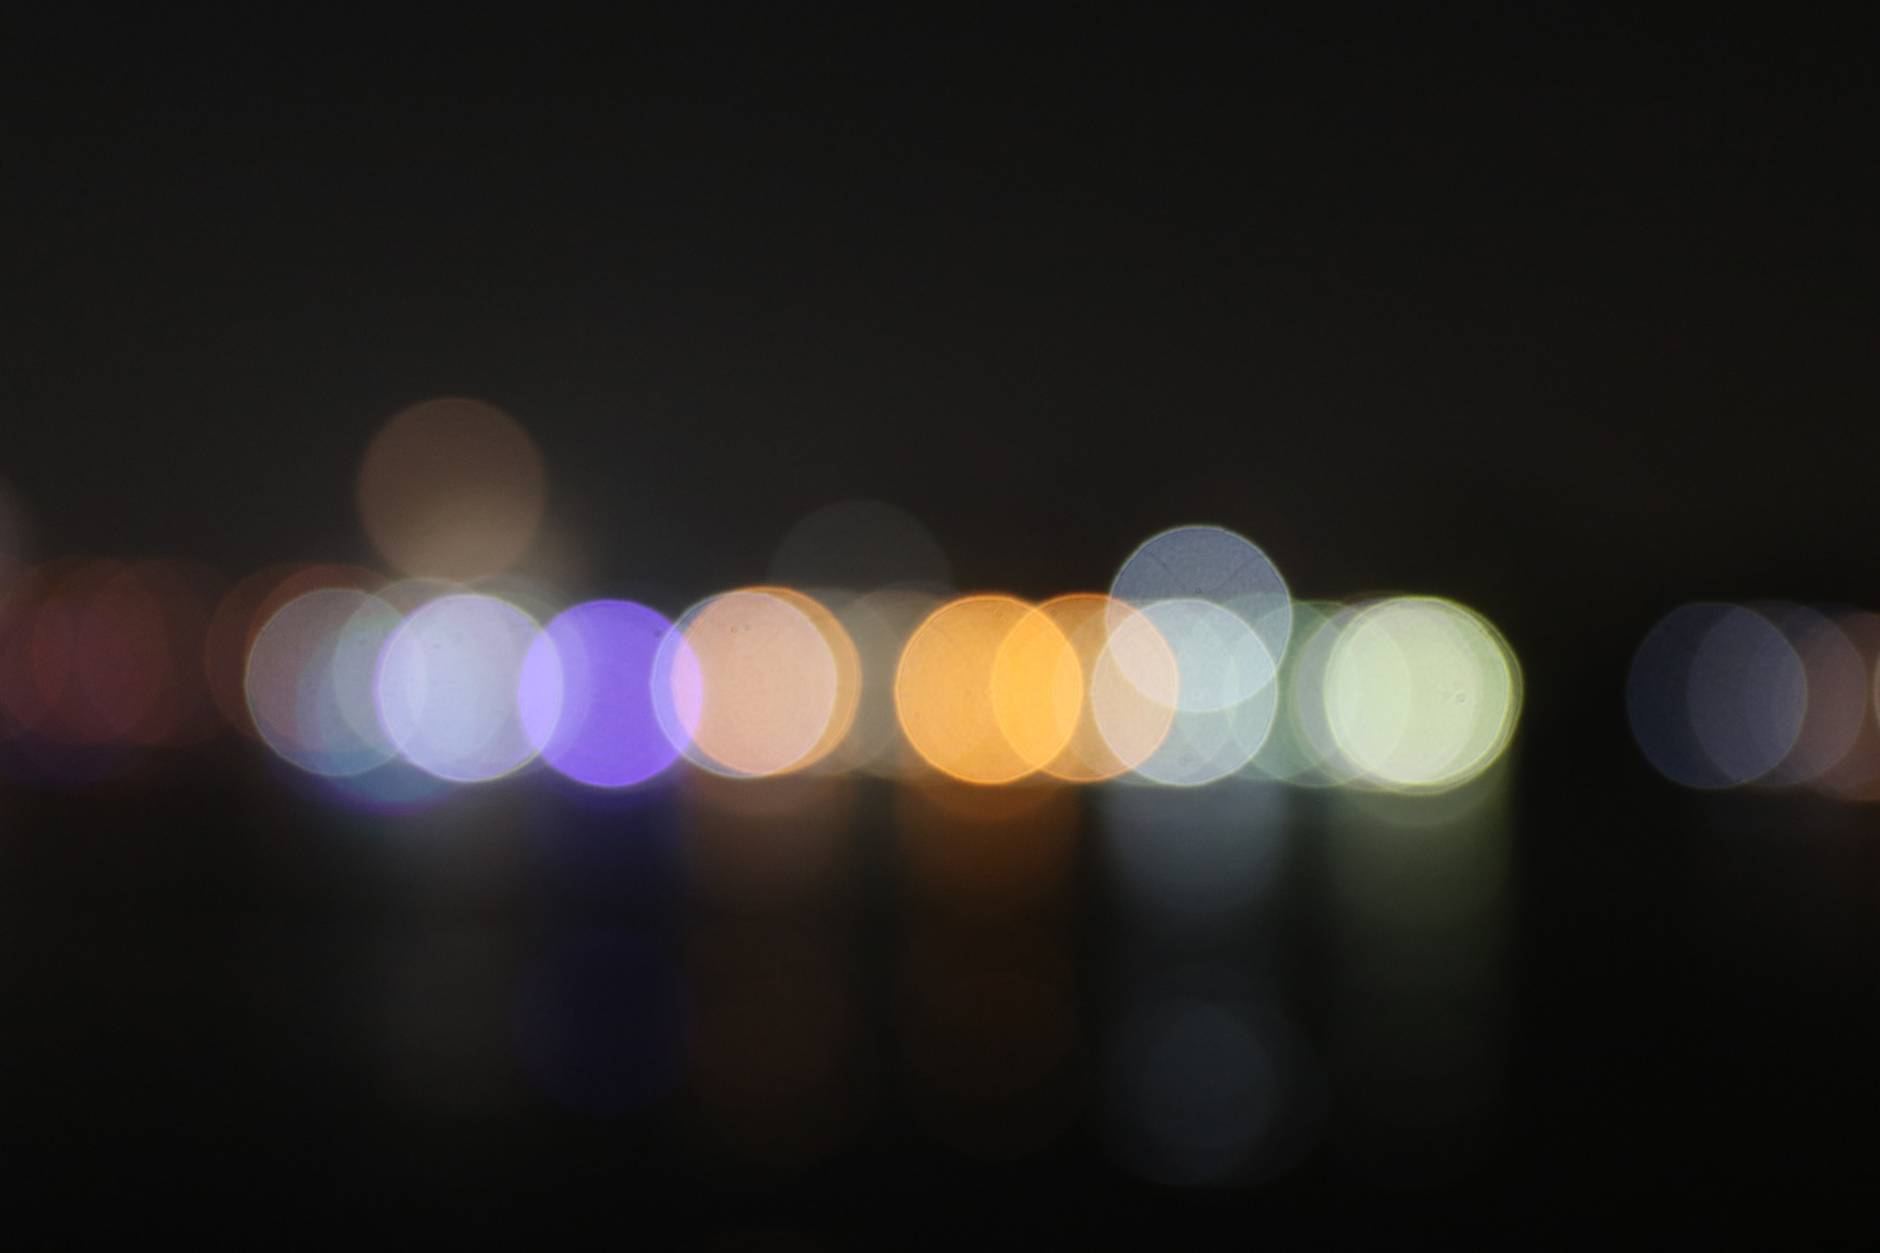 blur lights photography during night